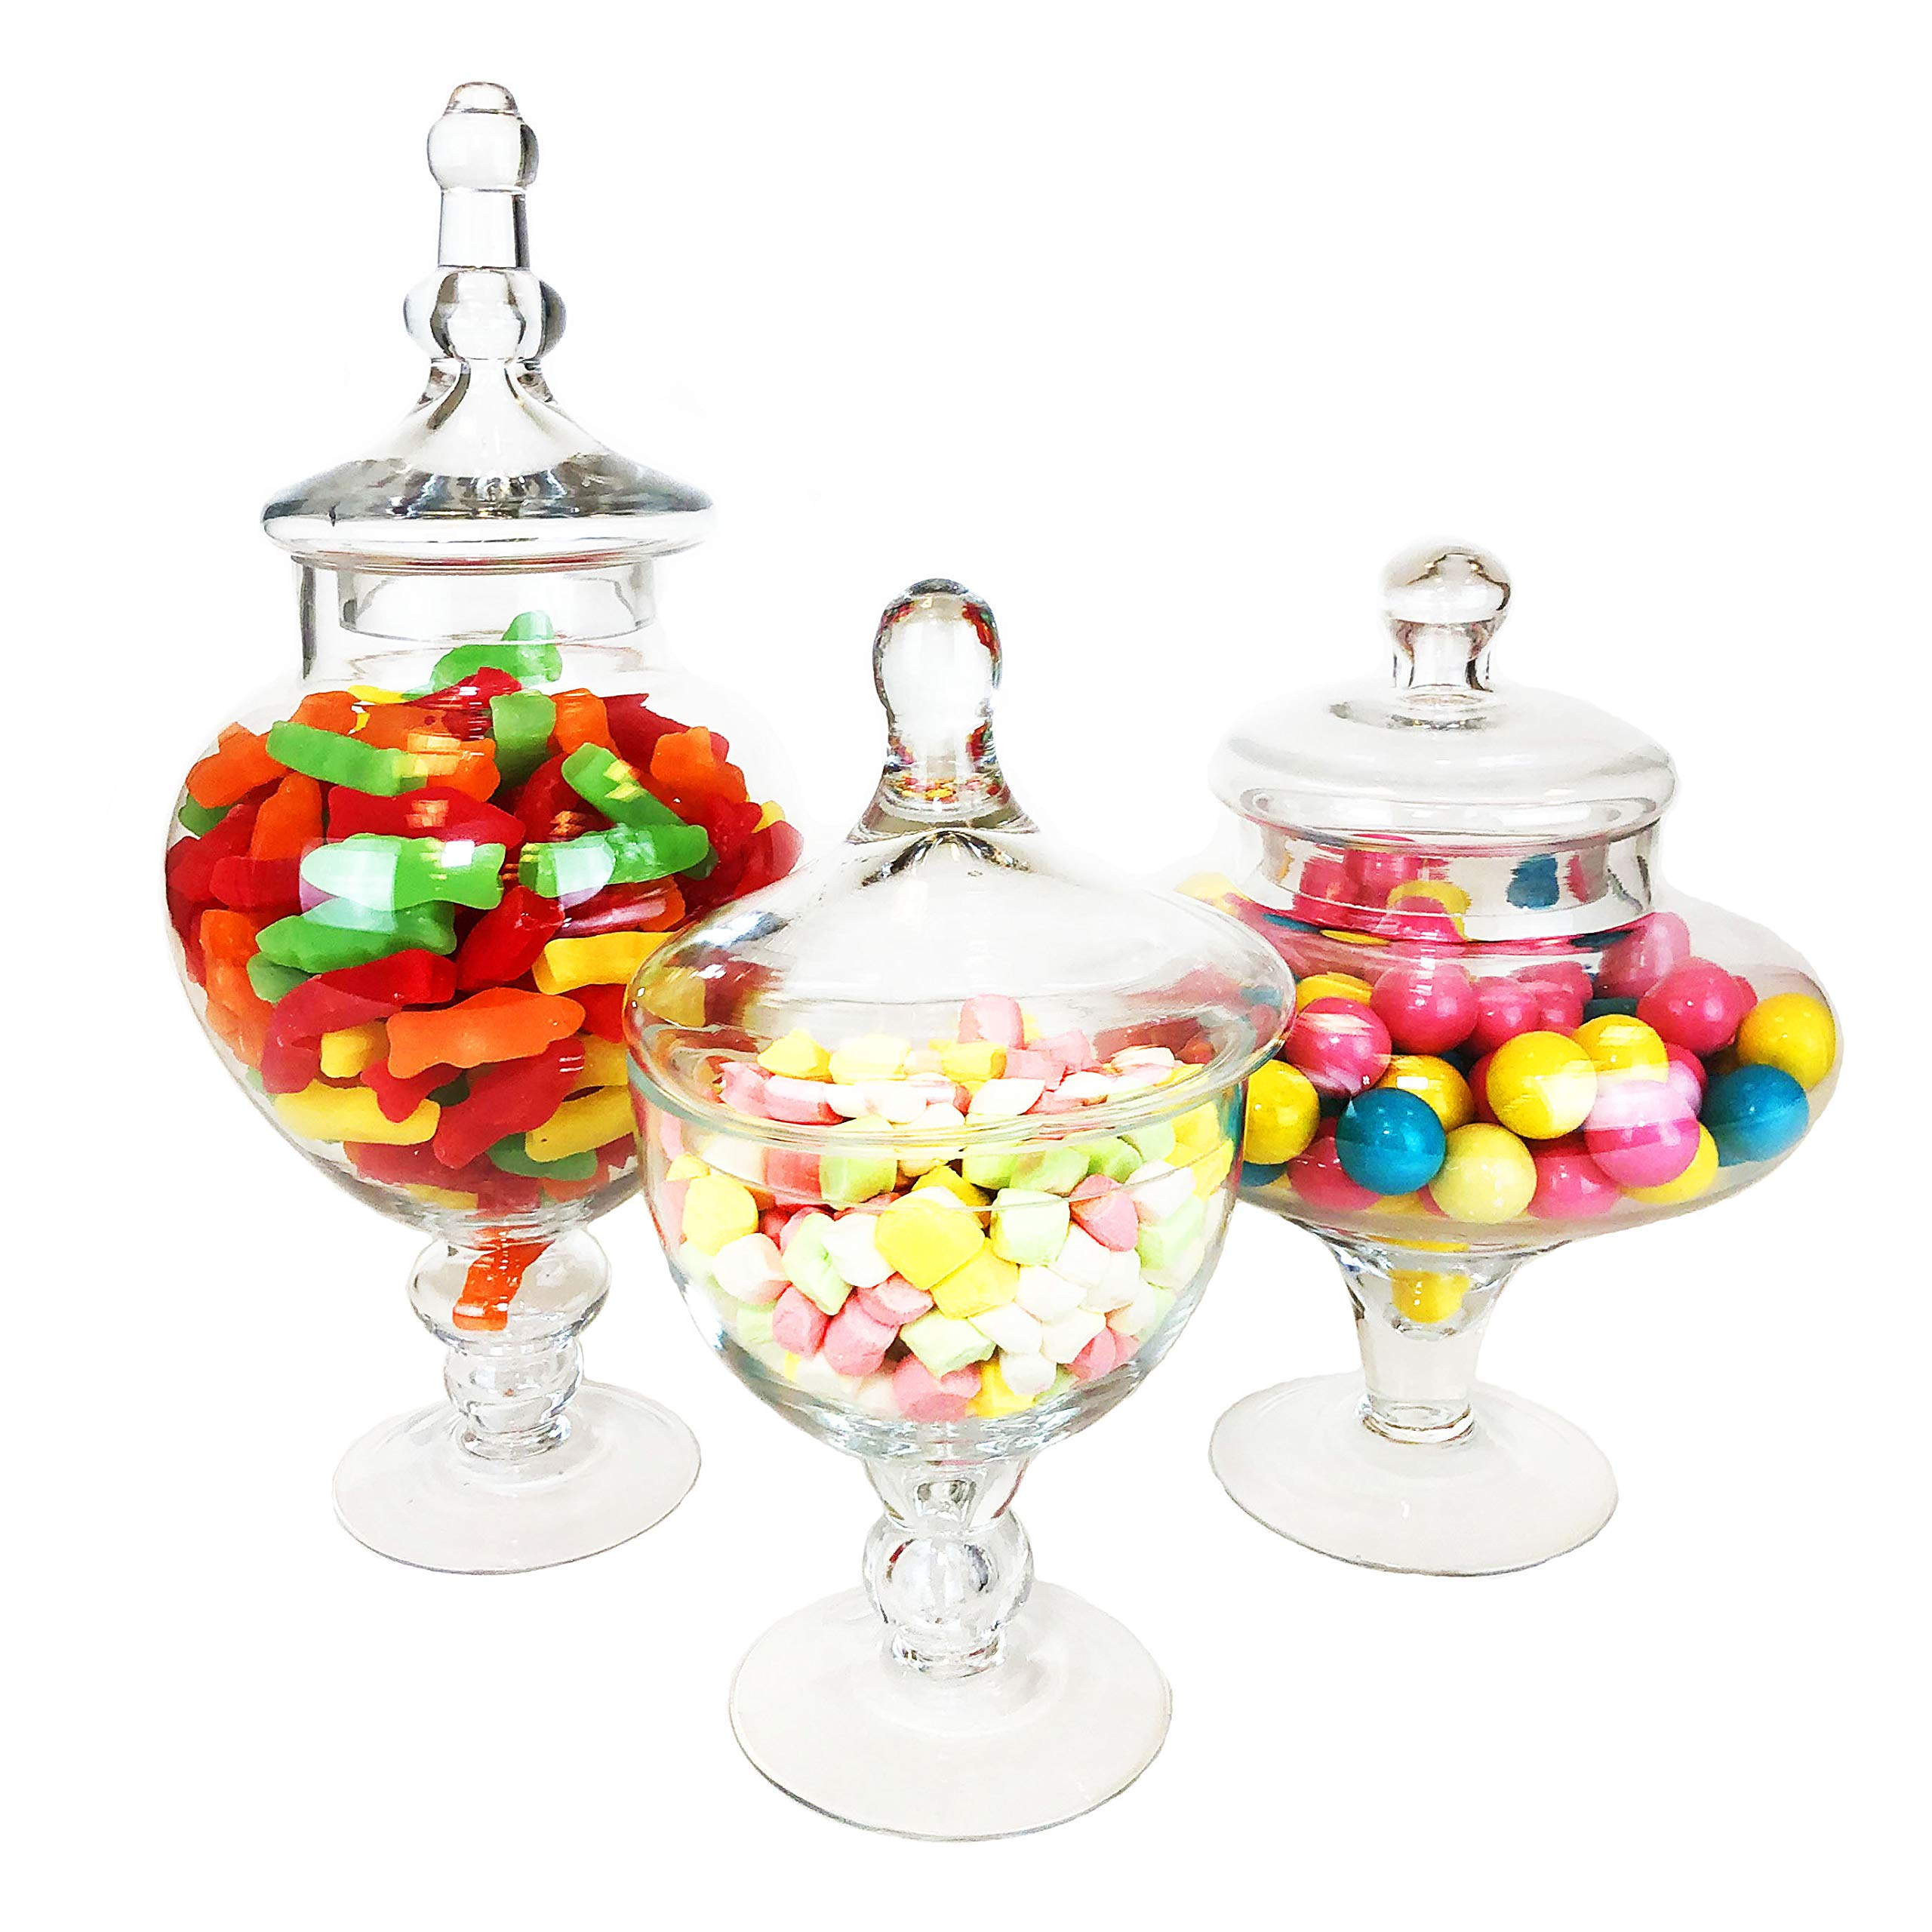 CYS EXCEL Apothecary Jars, Candy Buffet Display, Elegant Storage Jars, 3 Different Styles & Sizes, Pack of 1 Set of 3, Baby Shower Decorations, Height are 10'' 9.5'' and 14.5'' by CYS EXCEL